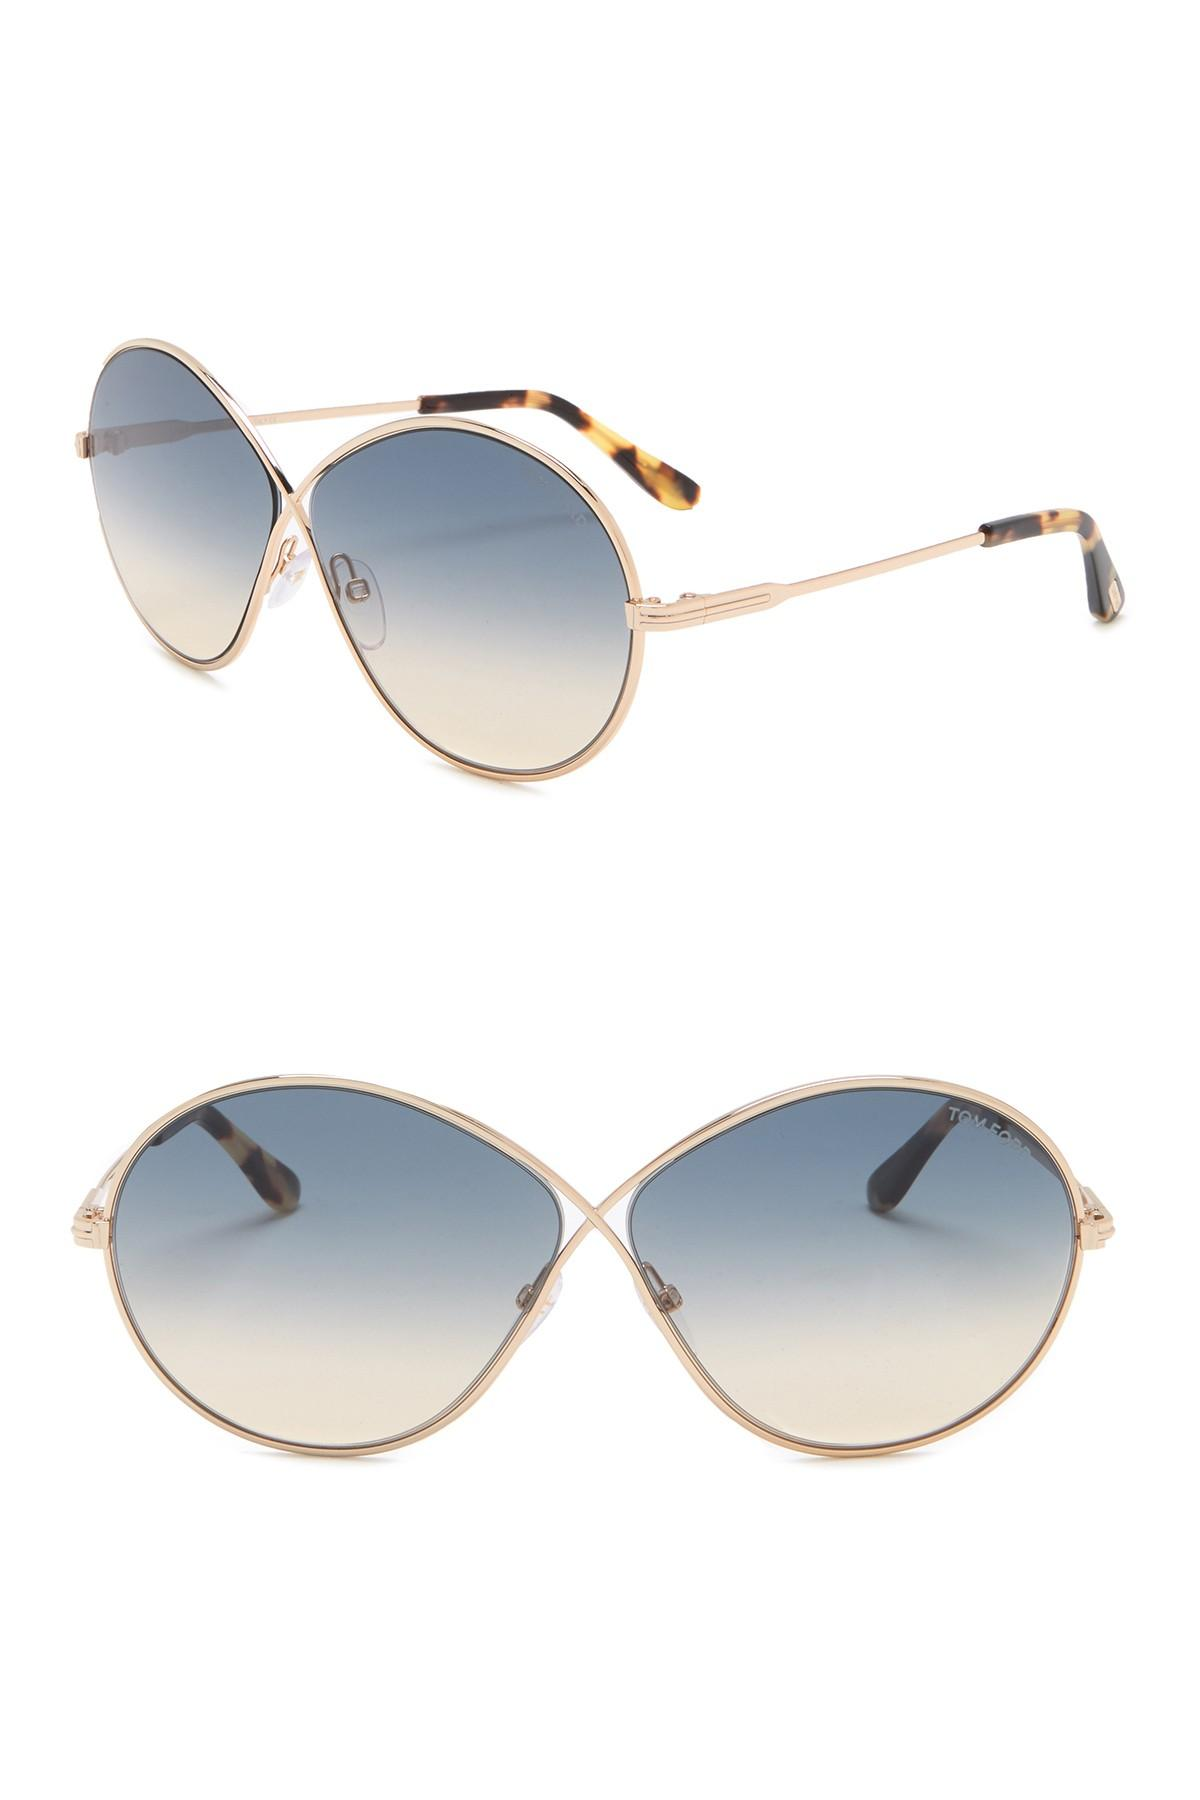 e5c2779d5c8 Tom Ford. Women s Raina 64mm Butterfly Sunglasses.  495  160 From Nordstrom  Rack